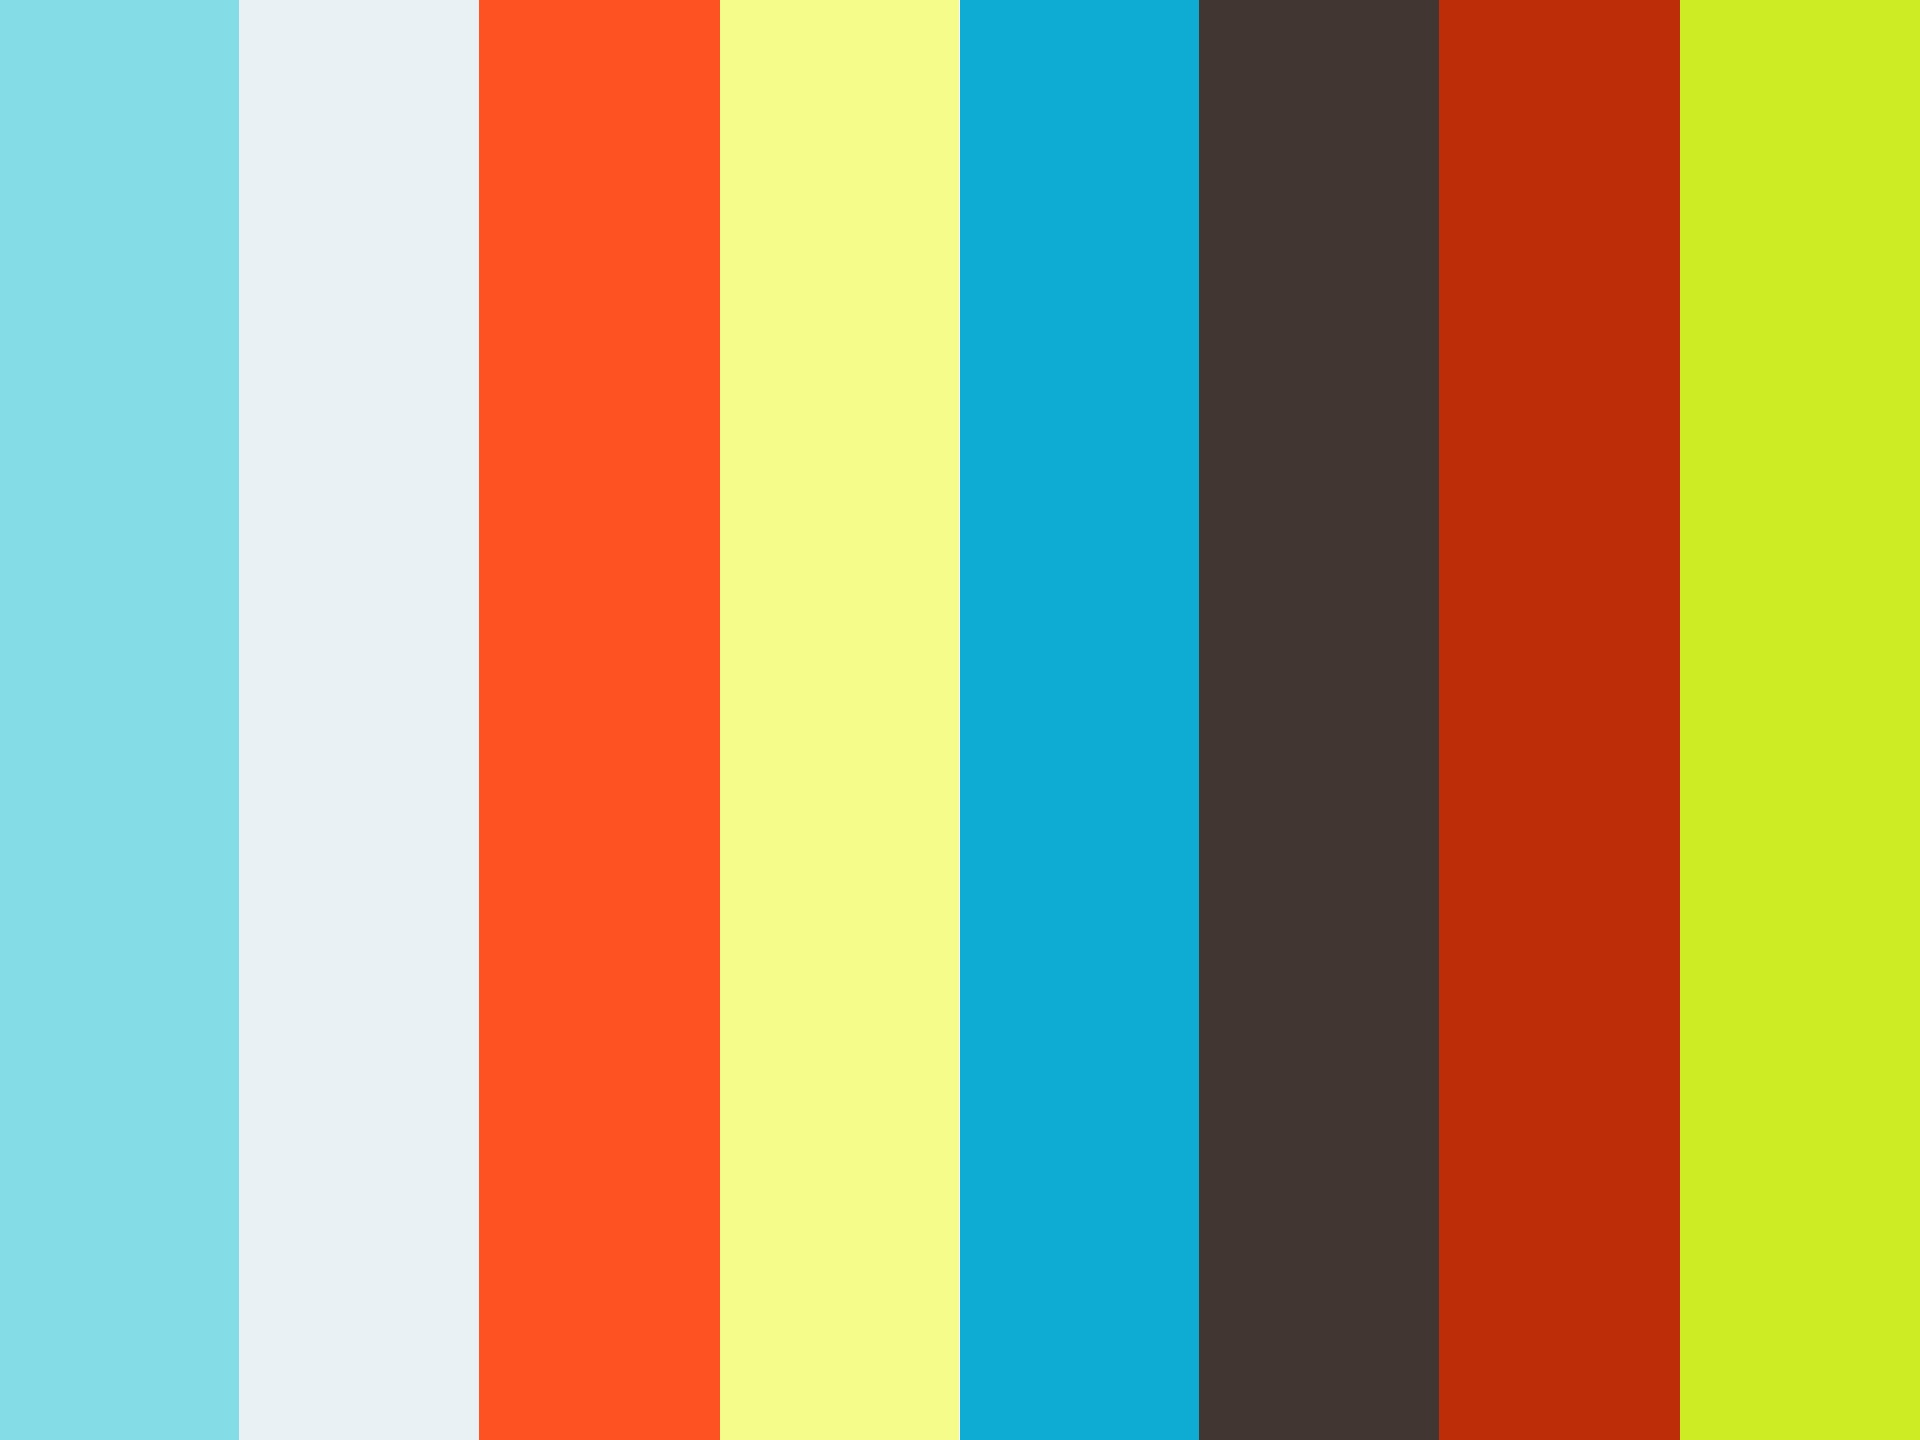 Images Of Lola Falana Ele bobbie wygant interviews lola falana on vimeo